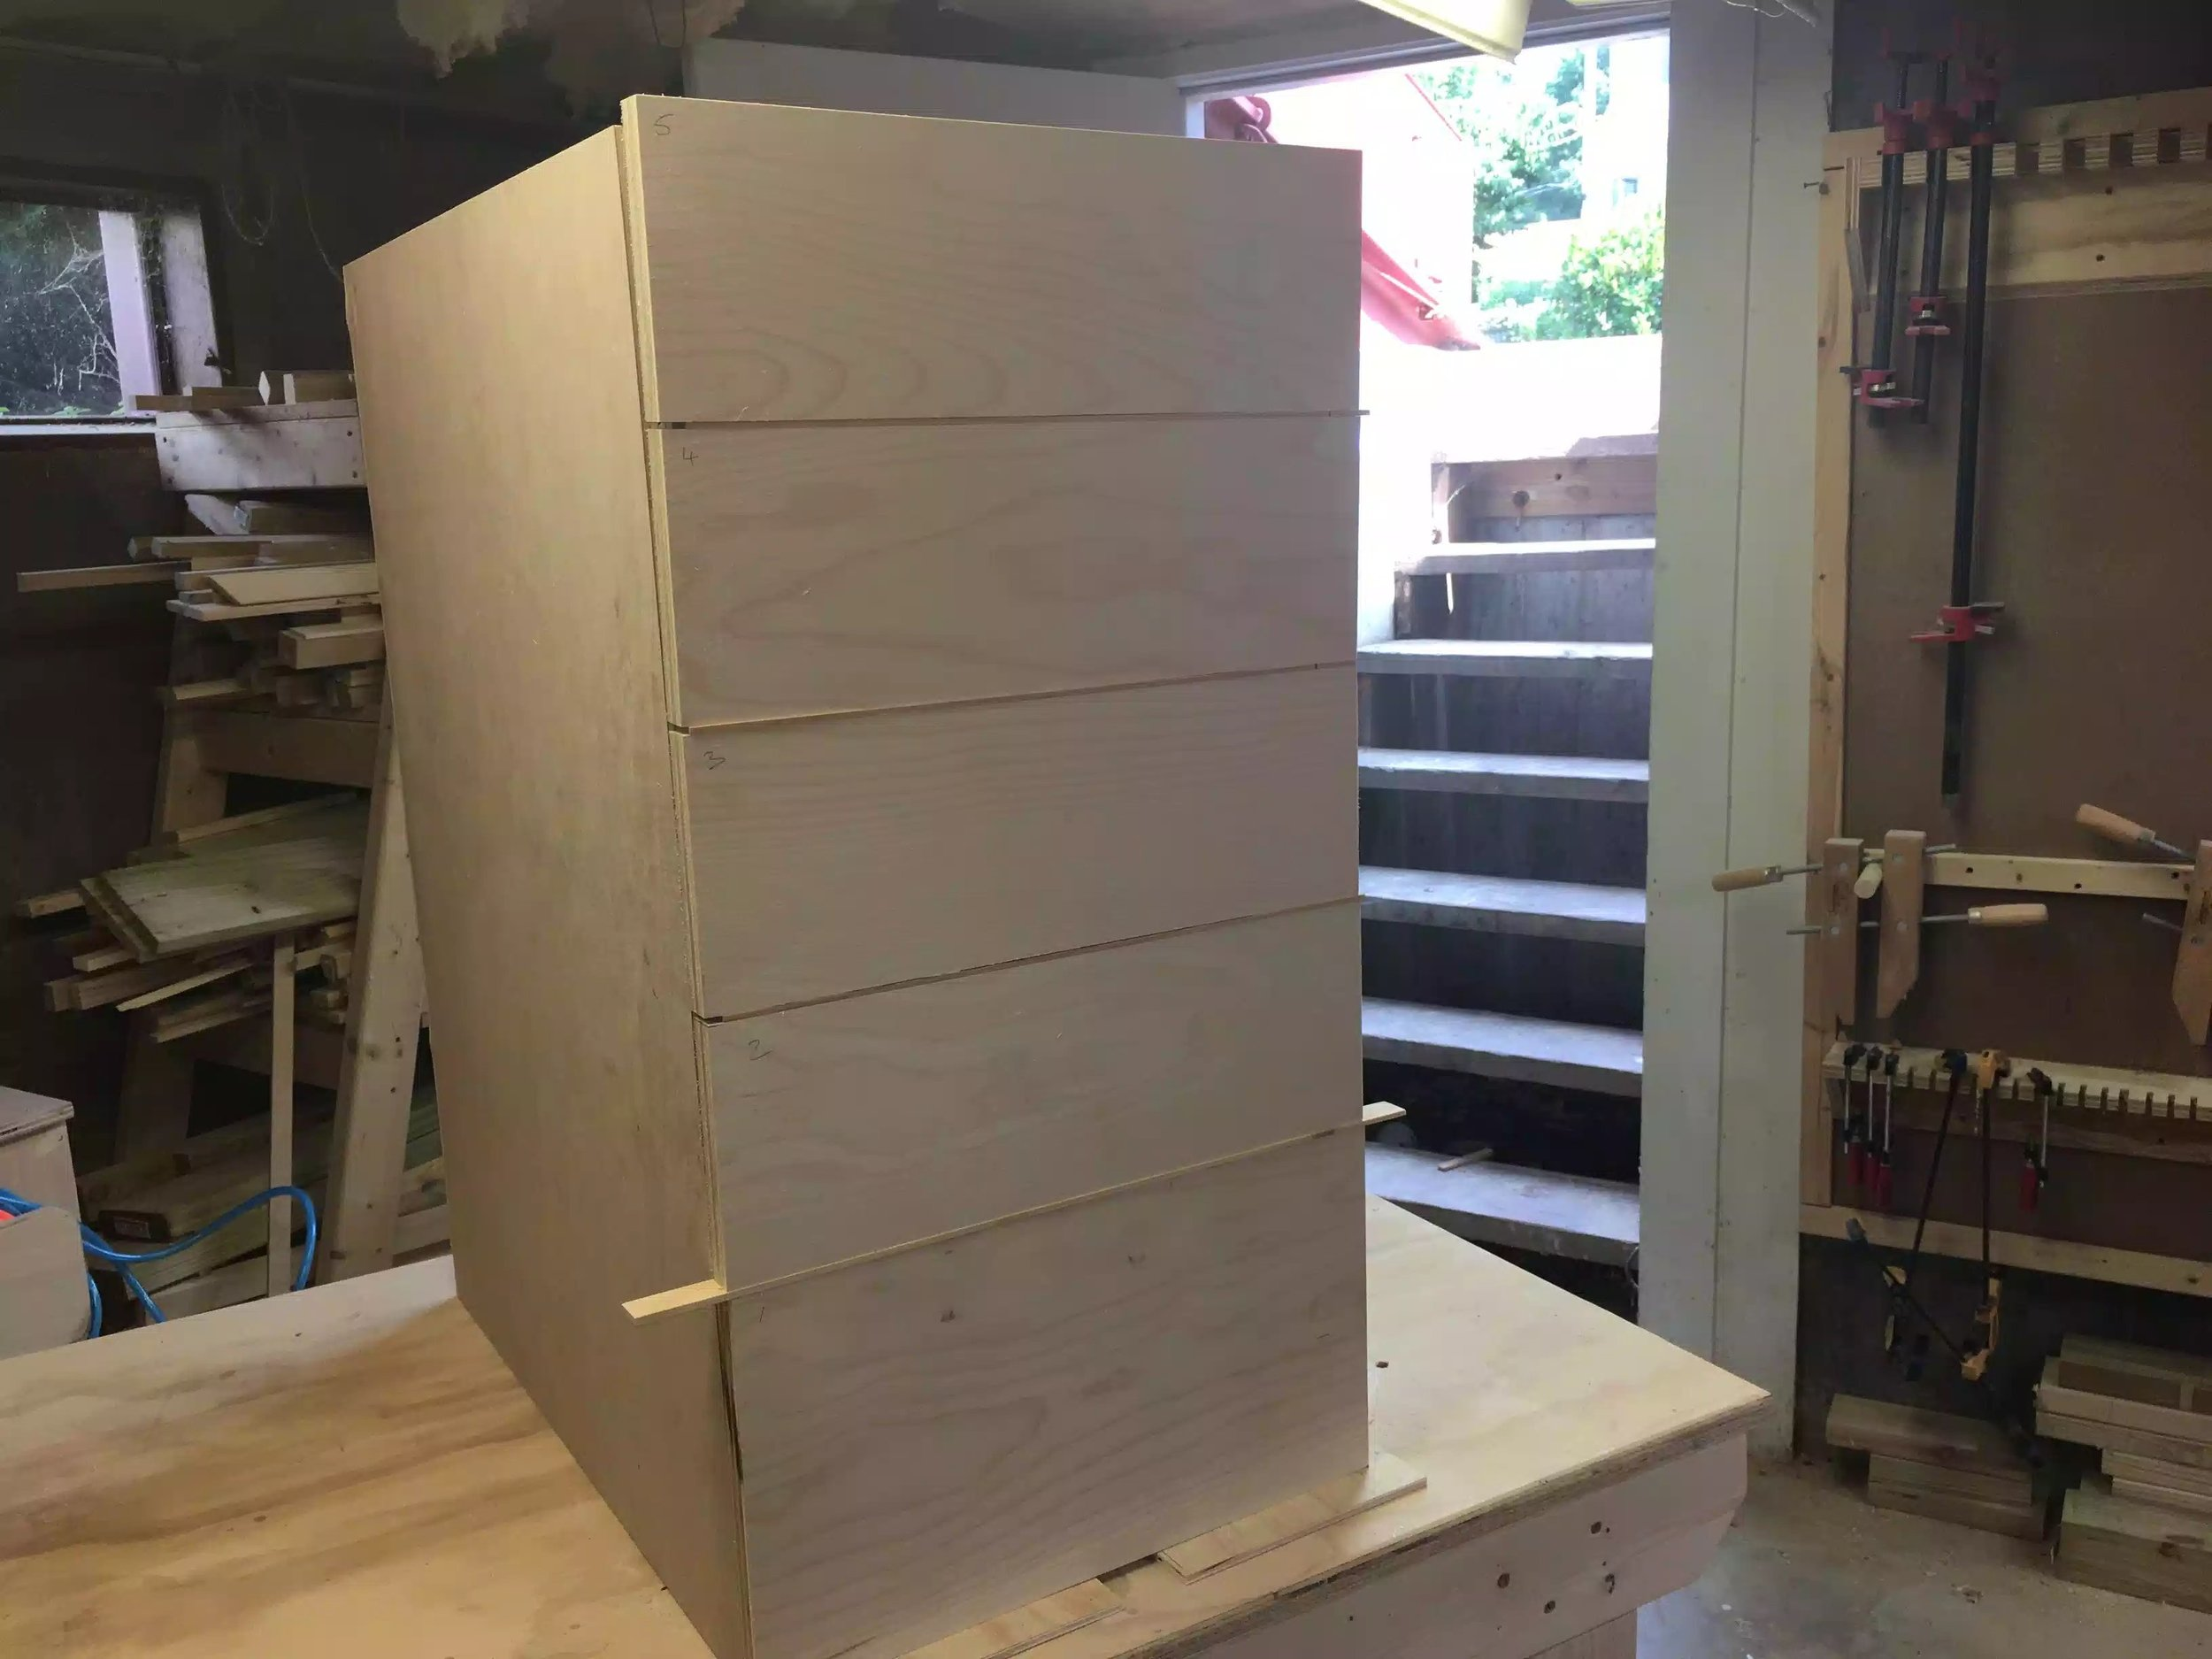 """I used 1/8"""" spacers to provide a little reveal between the drawers, I used my Grr-ripper to do that but more on that in the next part."""